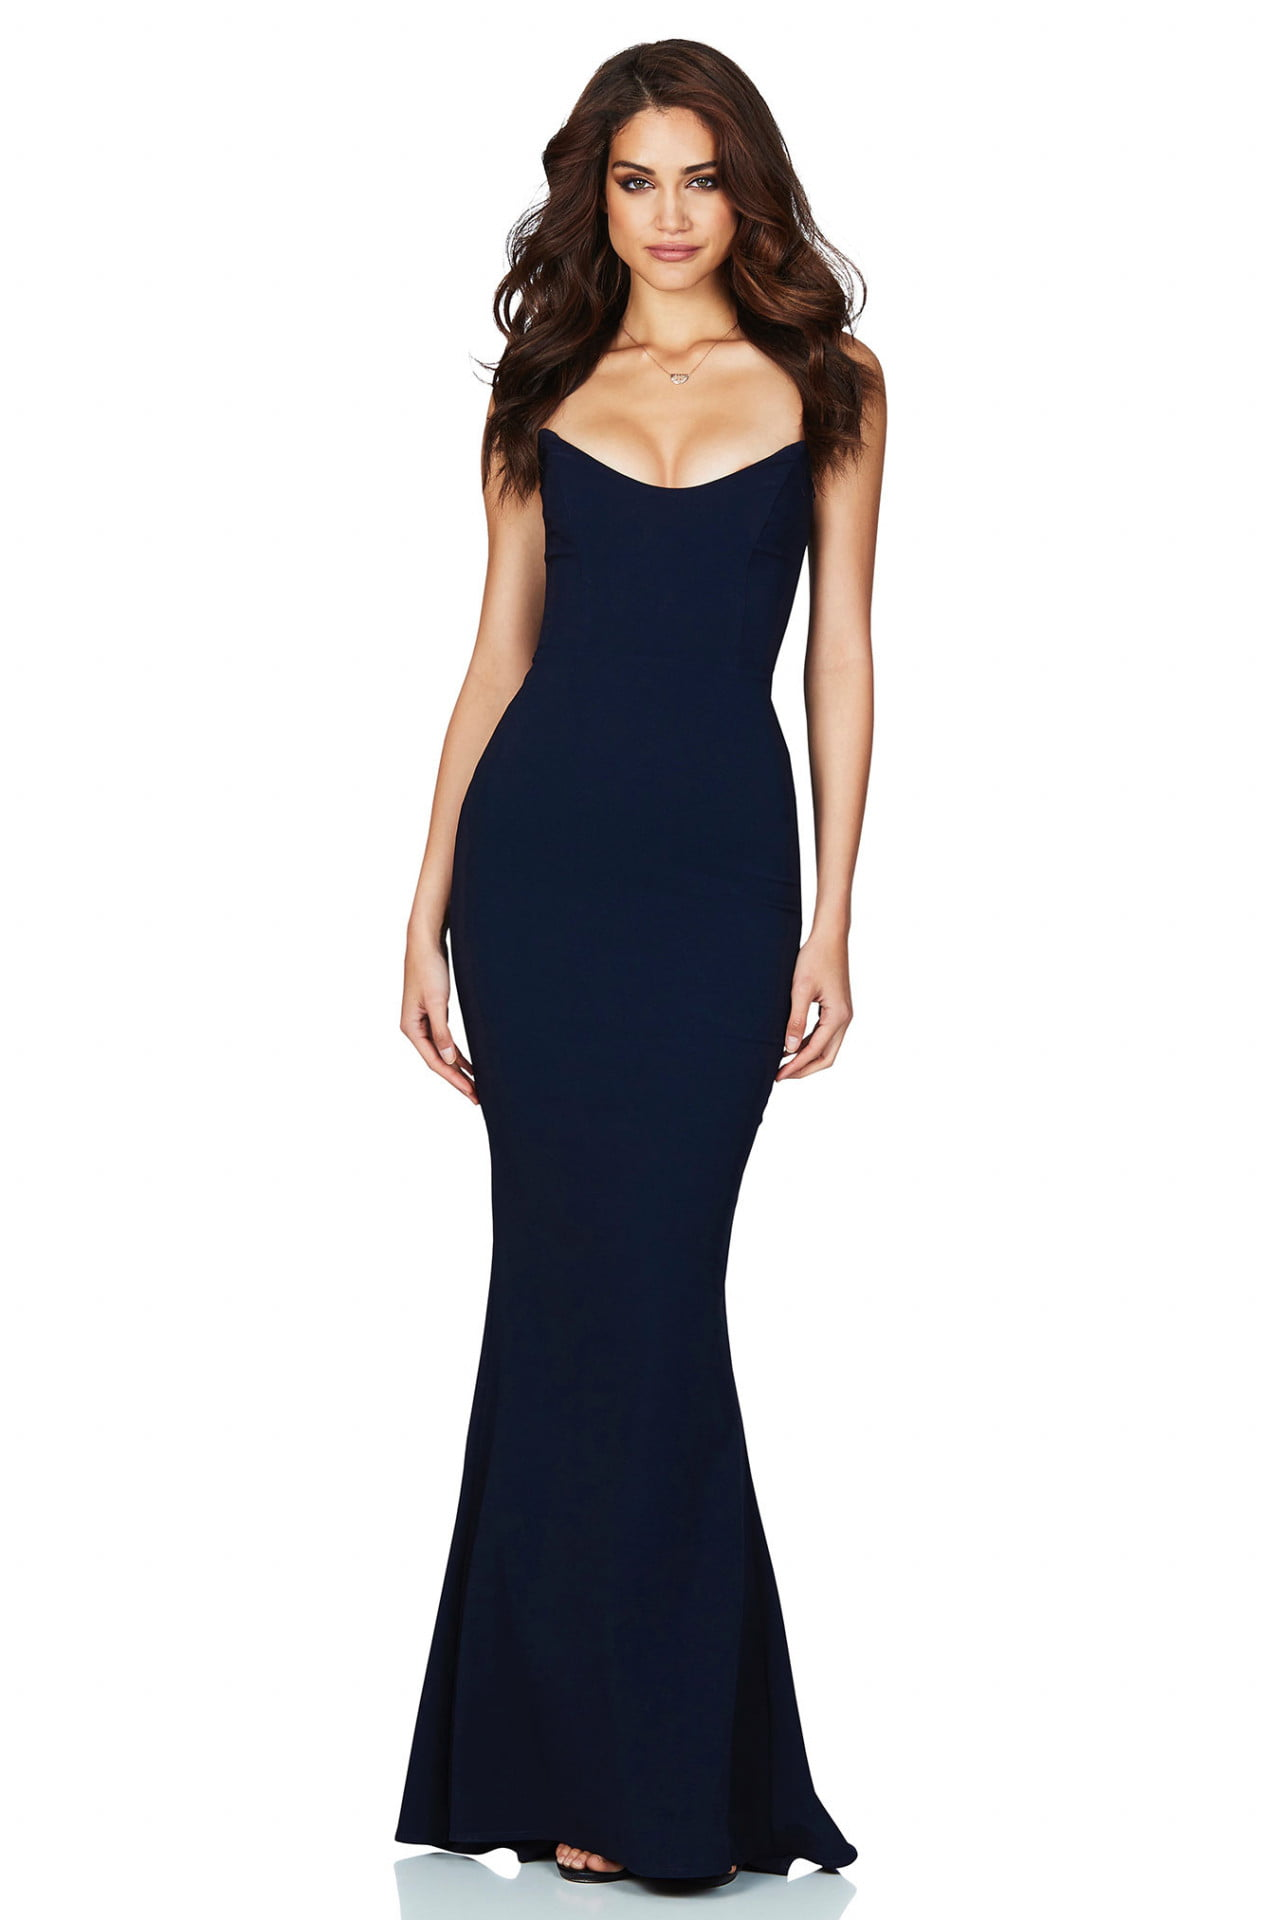 Nookie Diamond Gown Floor Length, Strapless Navy